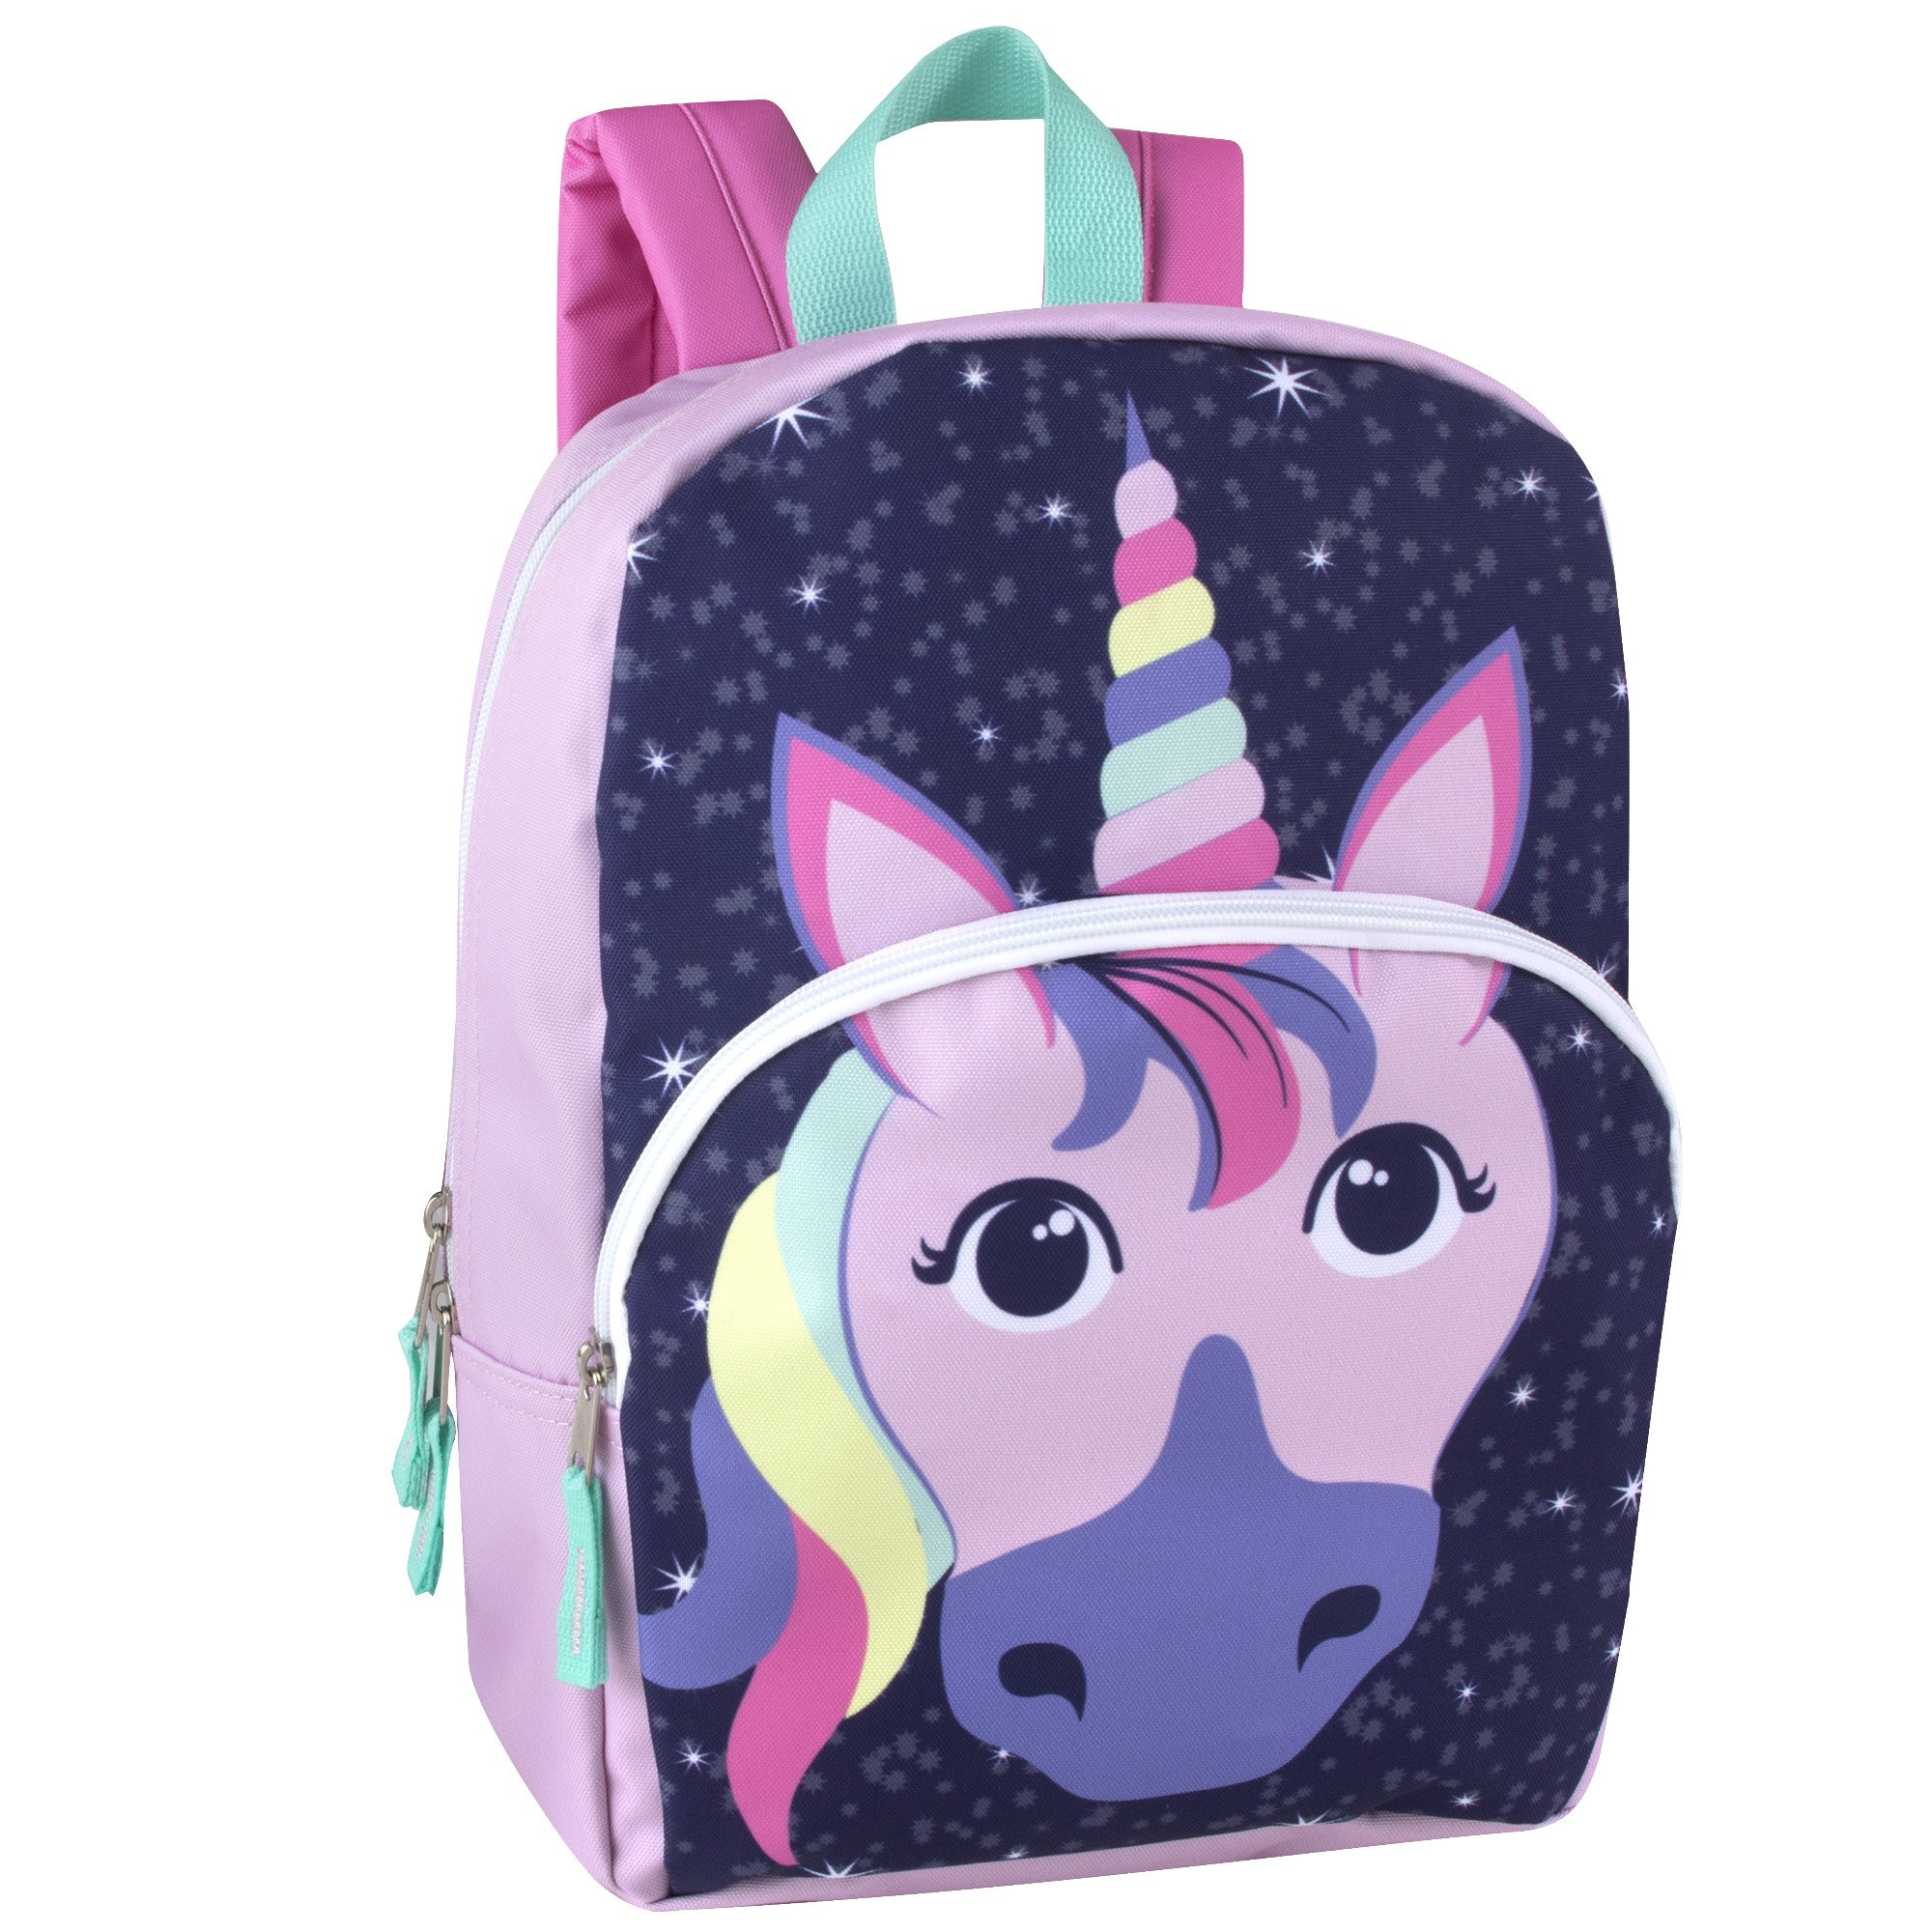 Kids Animal Friends Critter Backpacks For Boys & Girls With Reinforced Straps (UNICORN)